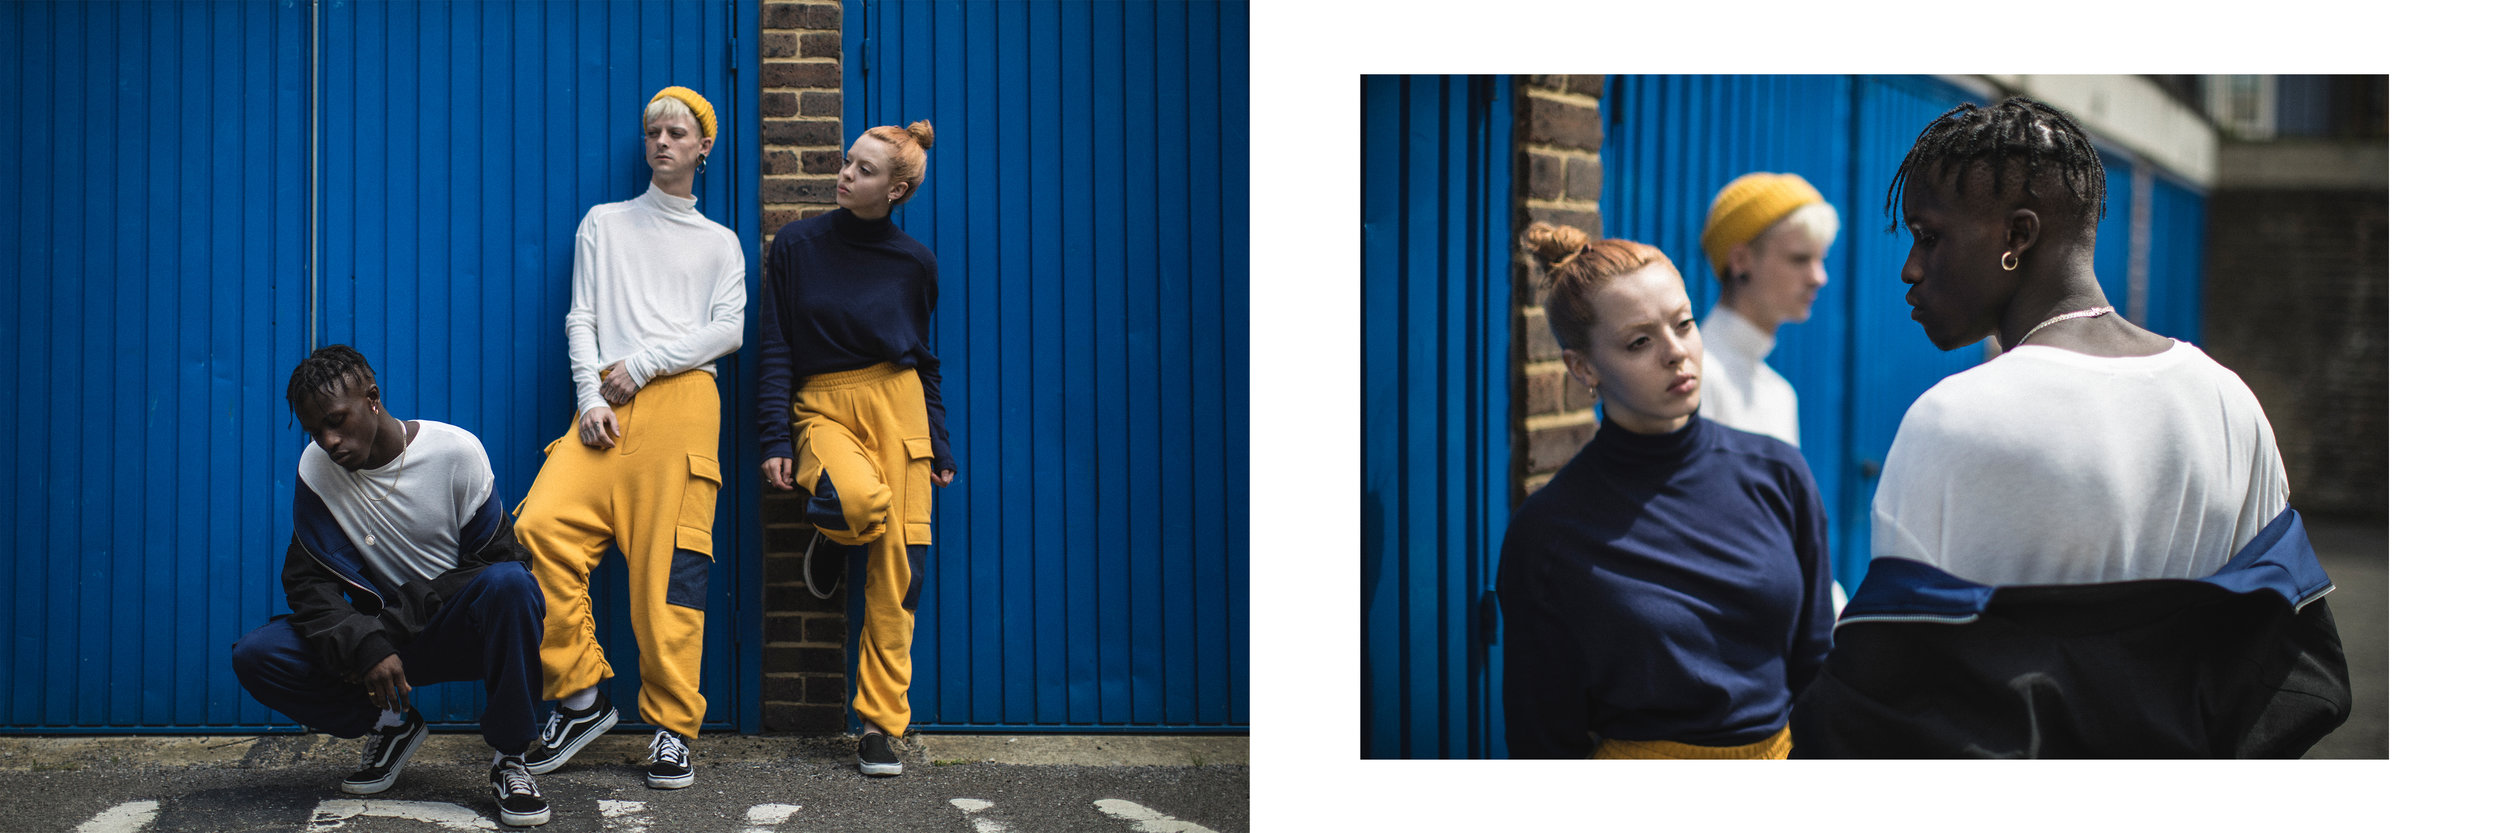 'Lookbook AW16' - Rabbithole Fashion Director & Stylist